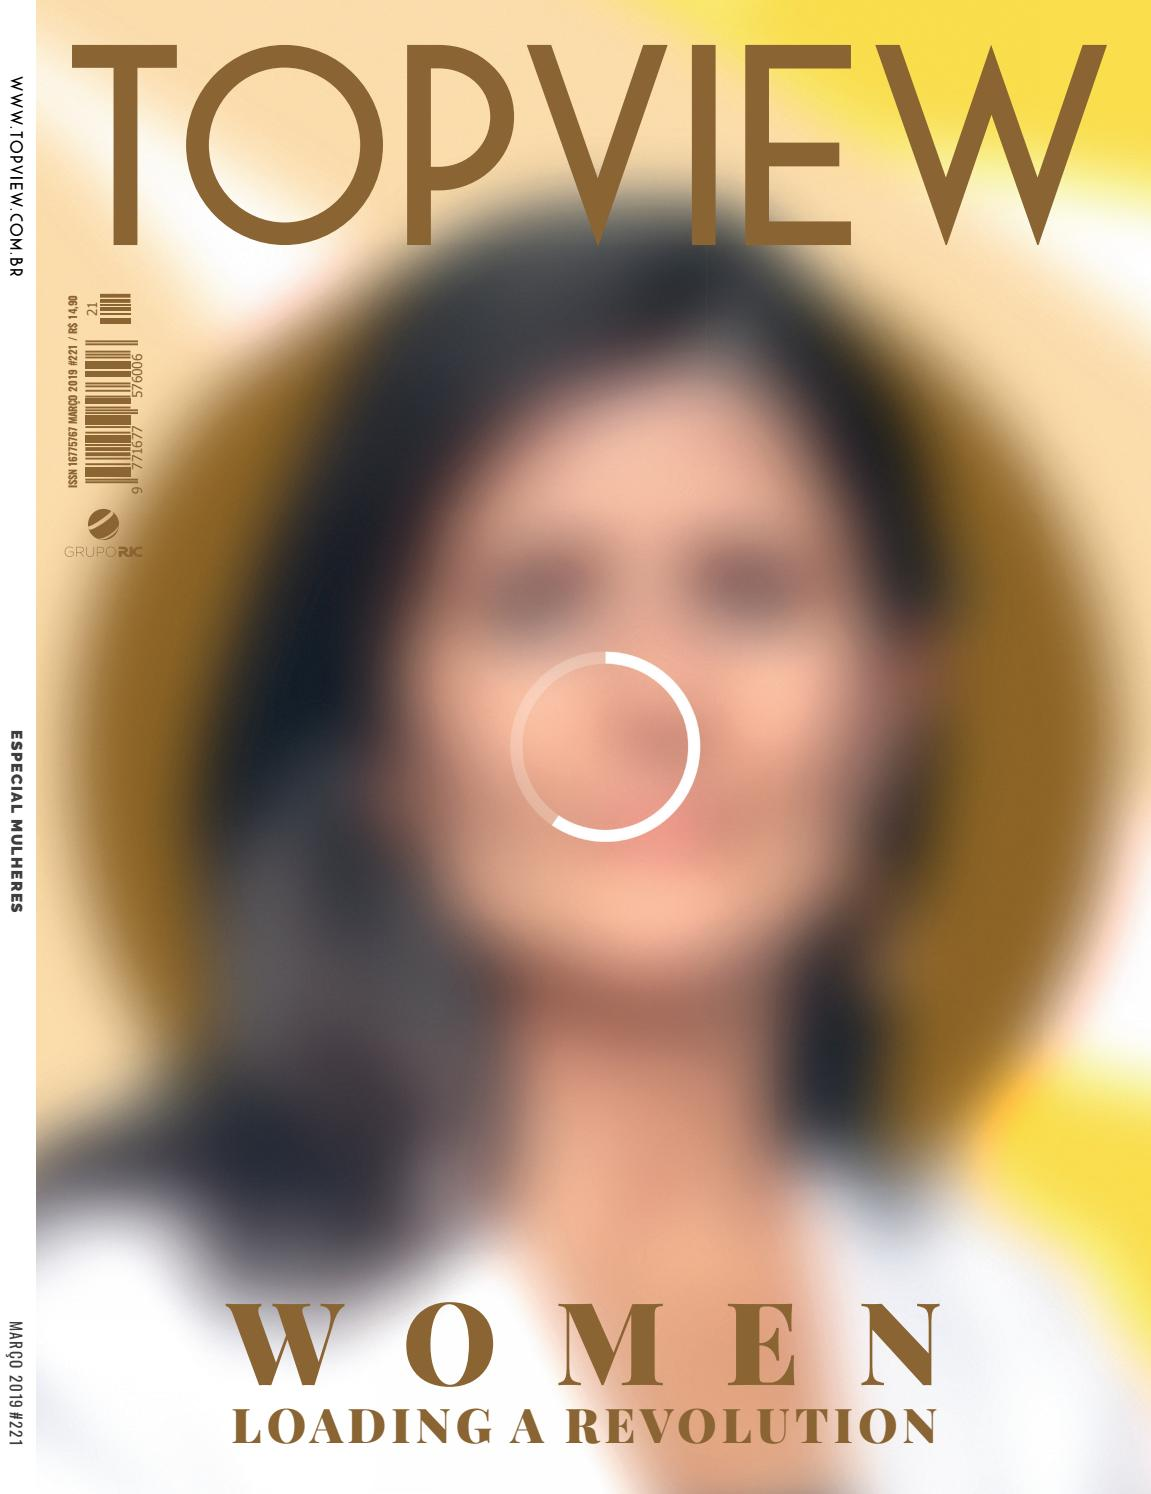 cb456d054 TOPVIEW 221 - Women loading a revolution by TOPVIEW - issuu